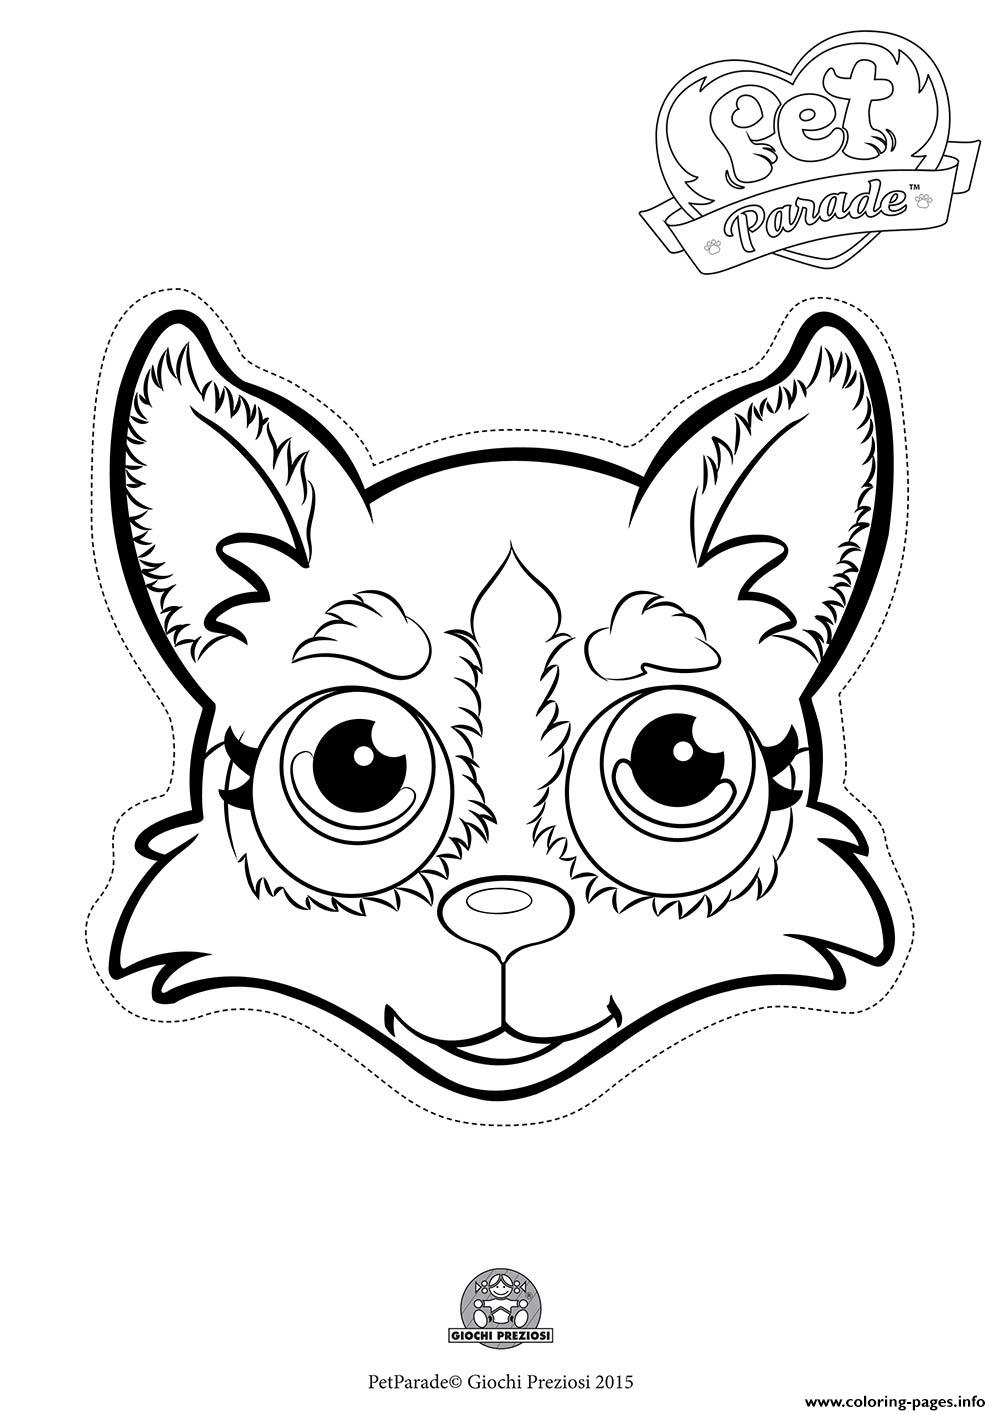 pet parade cute dog husky 2 coloring pages printable